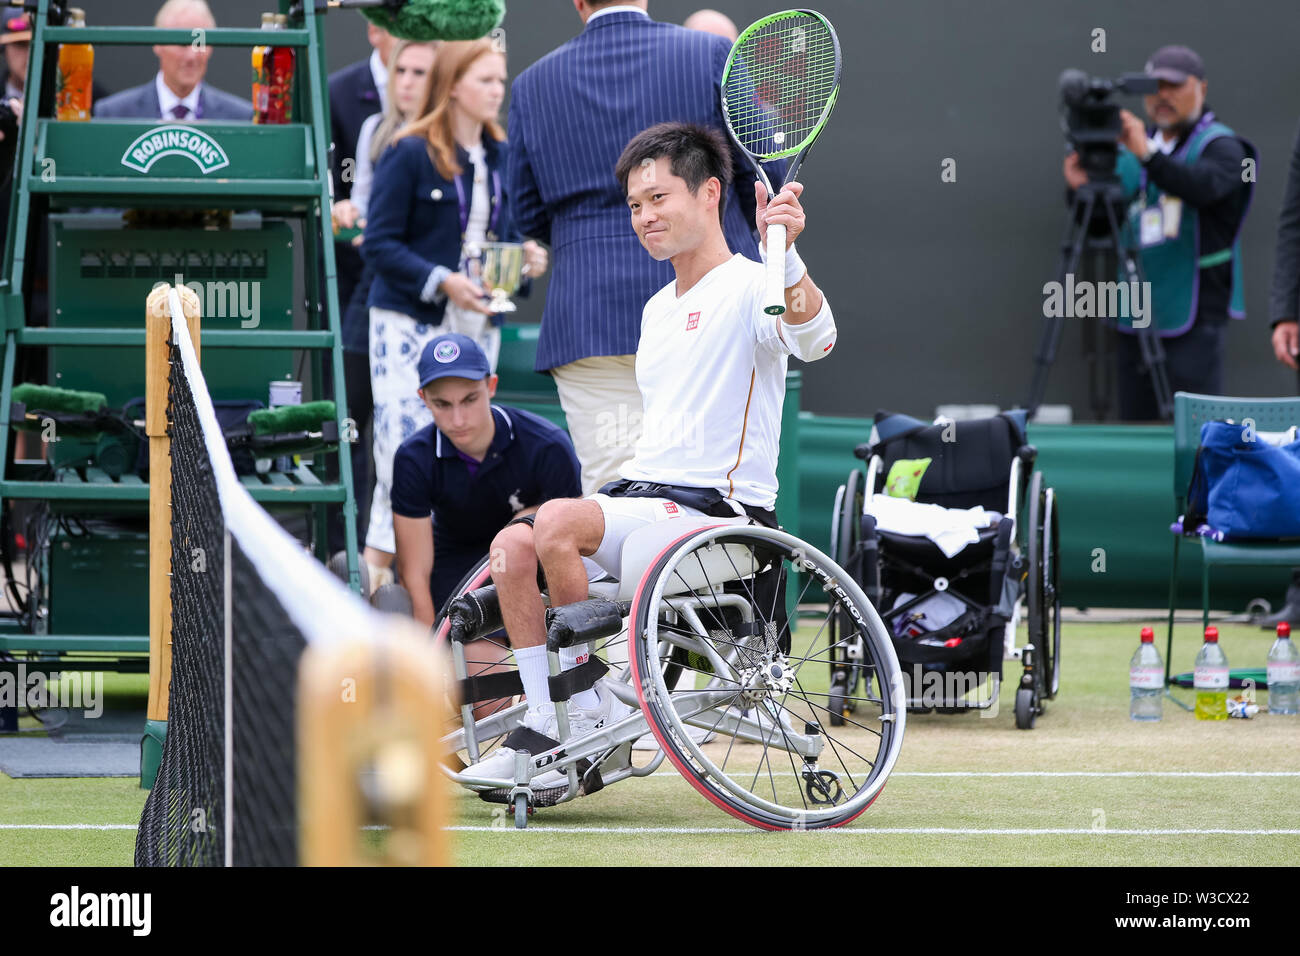 Wimbledon, London, UK. 14th July 2019. Shingo Kunieda of Japan waves to the fans after the men's wheelchair singles final match of the Wimbledon Lawn Tennis Championships against Gustavo Fernandez of Argentina at the All England Lawn Tennis and Croquet Club in London, England on July 14, 2019. Credit: AFLO/Alamy Live News - Stock Image